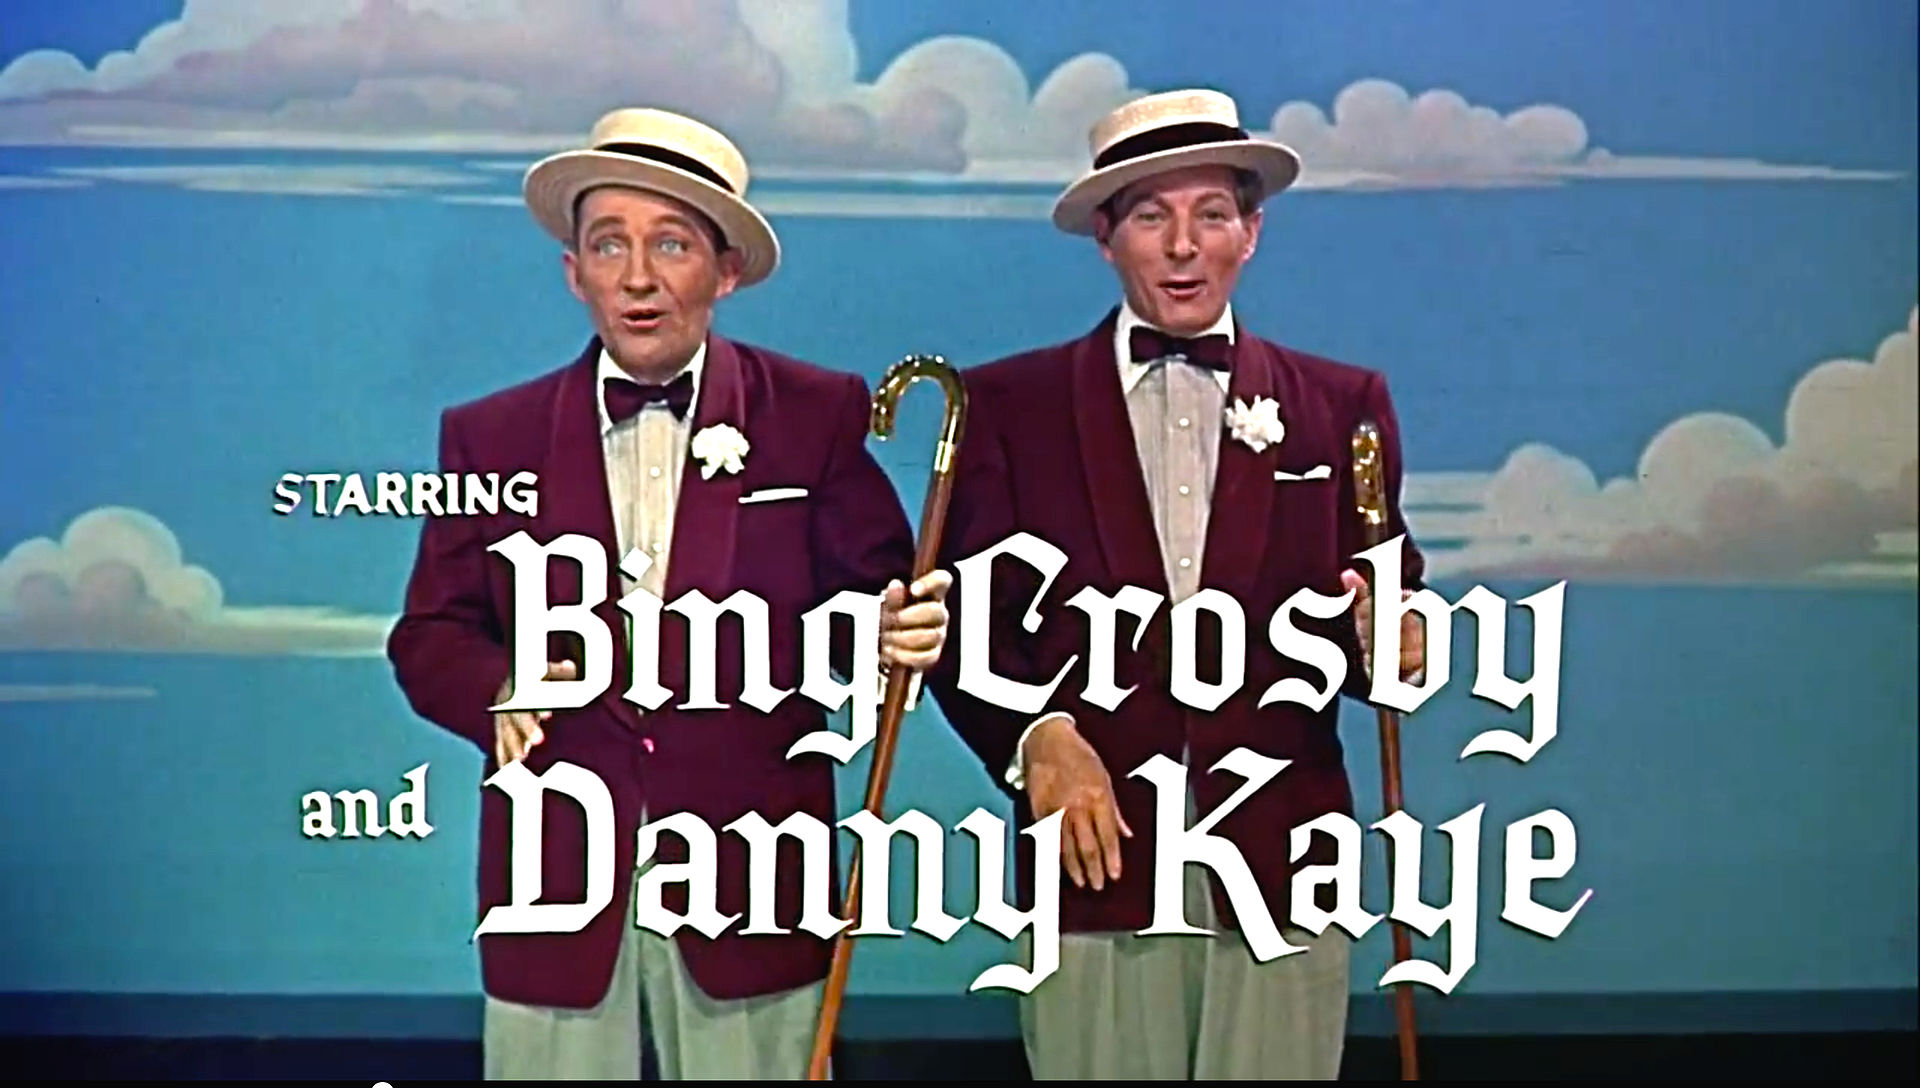 1920px-Bing_Crosby_and_Danny_Kaye_in_White_Christmas_trailer.jpg